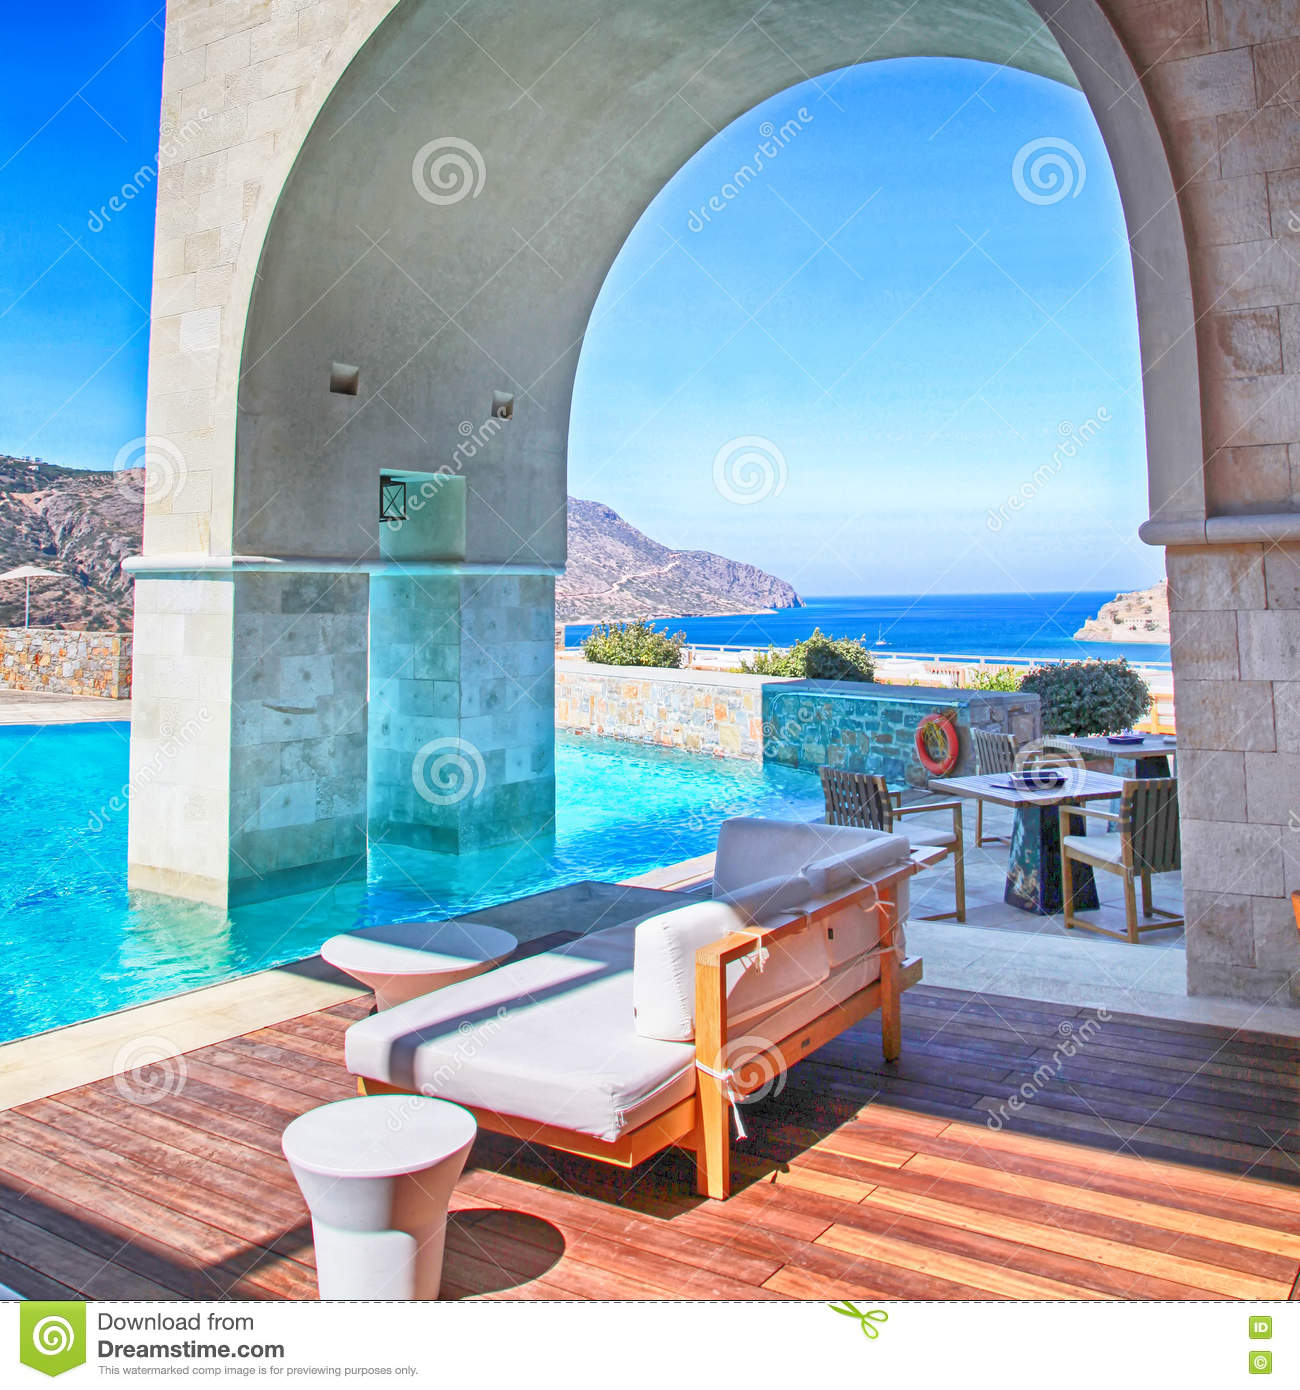 Mediterranean Style Houses With Ocean Views: Vertical View Of Arch Pool Terrace On Summer Resort Greece